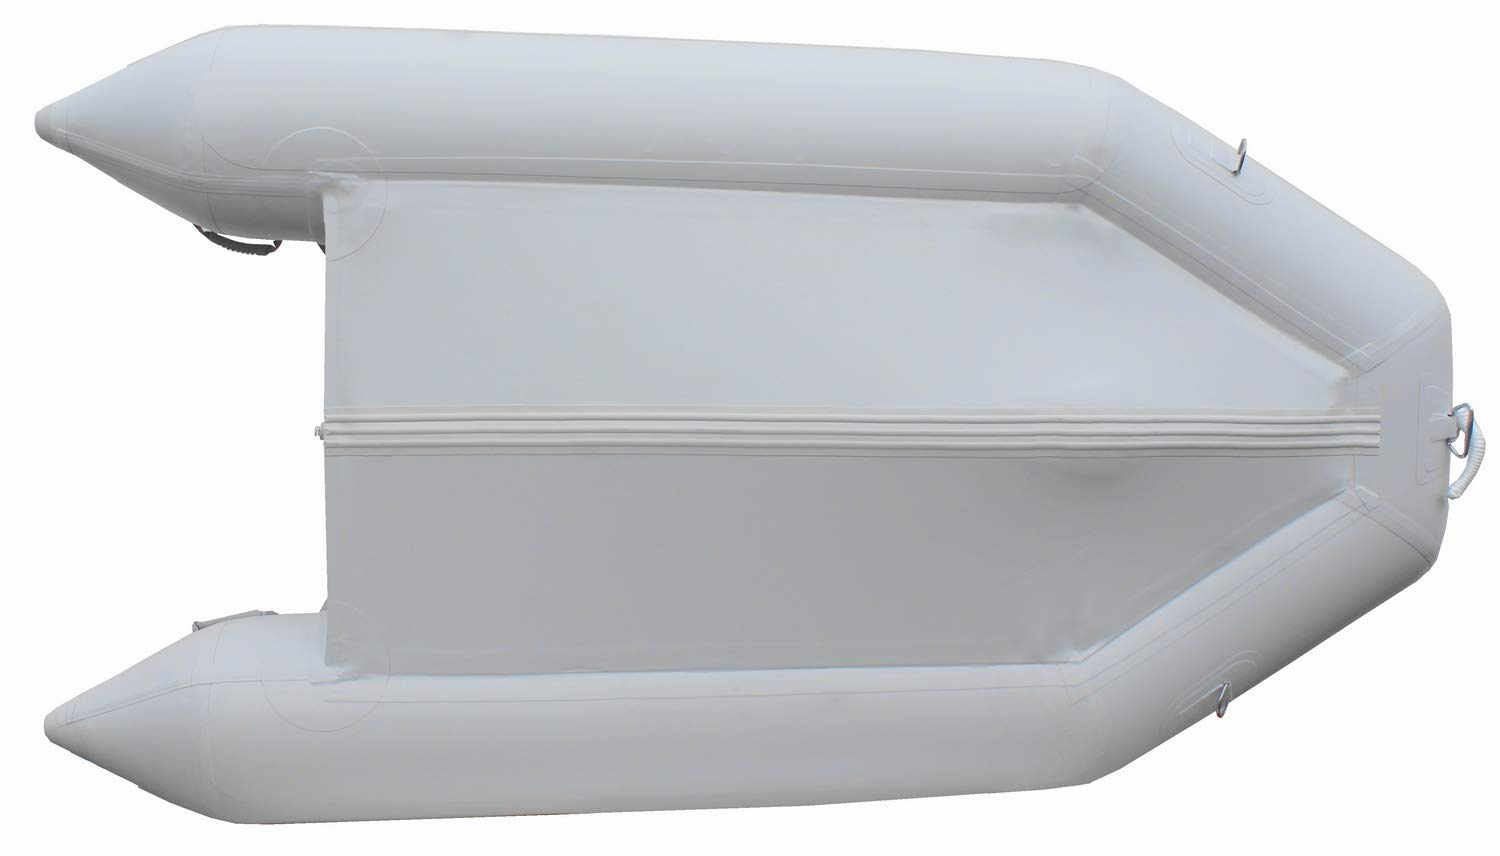 Saturn Inflatable Boats 9 6'